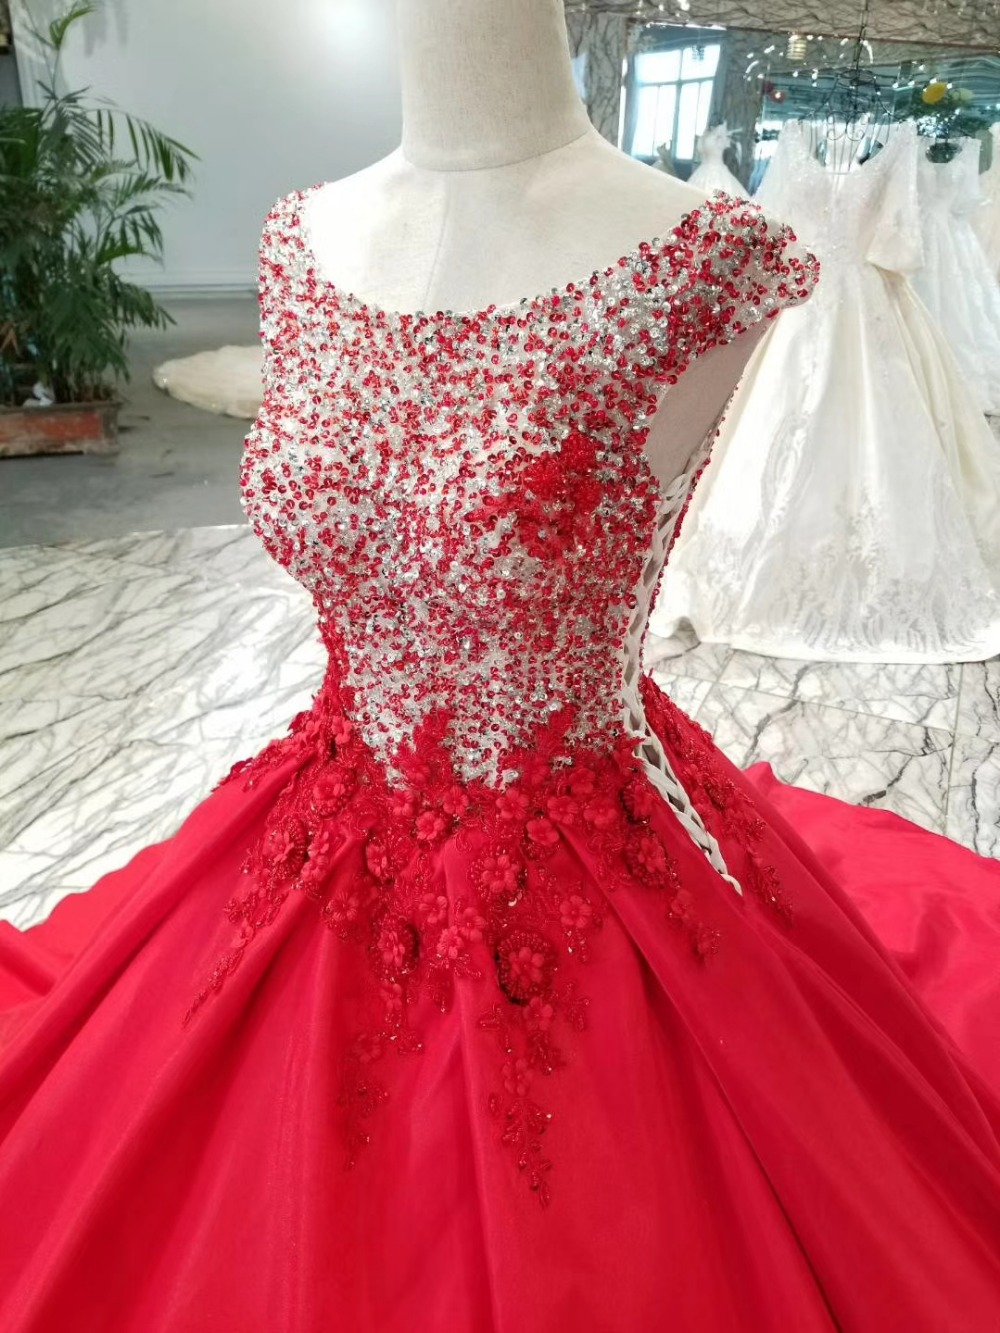 AOLANES Long Puffy Prom Dresses 2018 Elegant Ball Gown Sparkly Beaded  Backless Lace UP Girl Red Tulle Prom Dress For Party-in Prom Dresses from  Weddings ... c9c0f45253fd